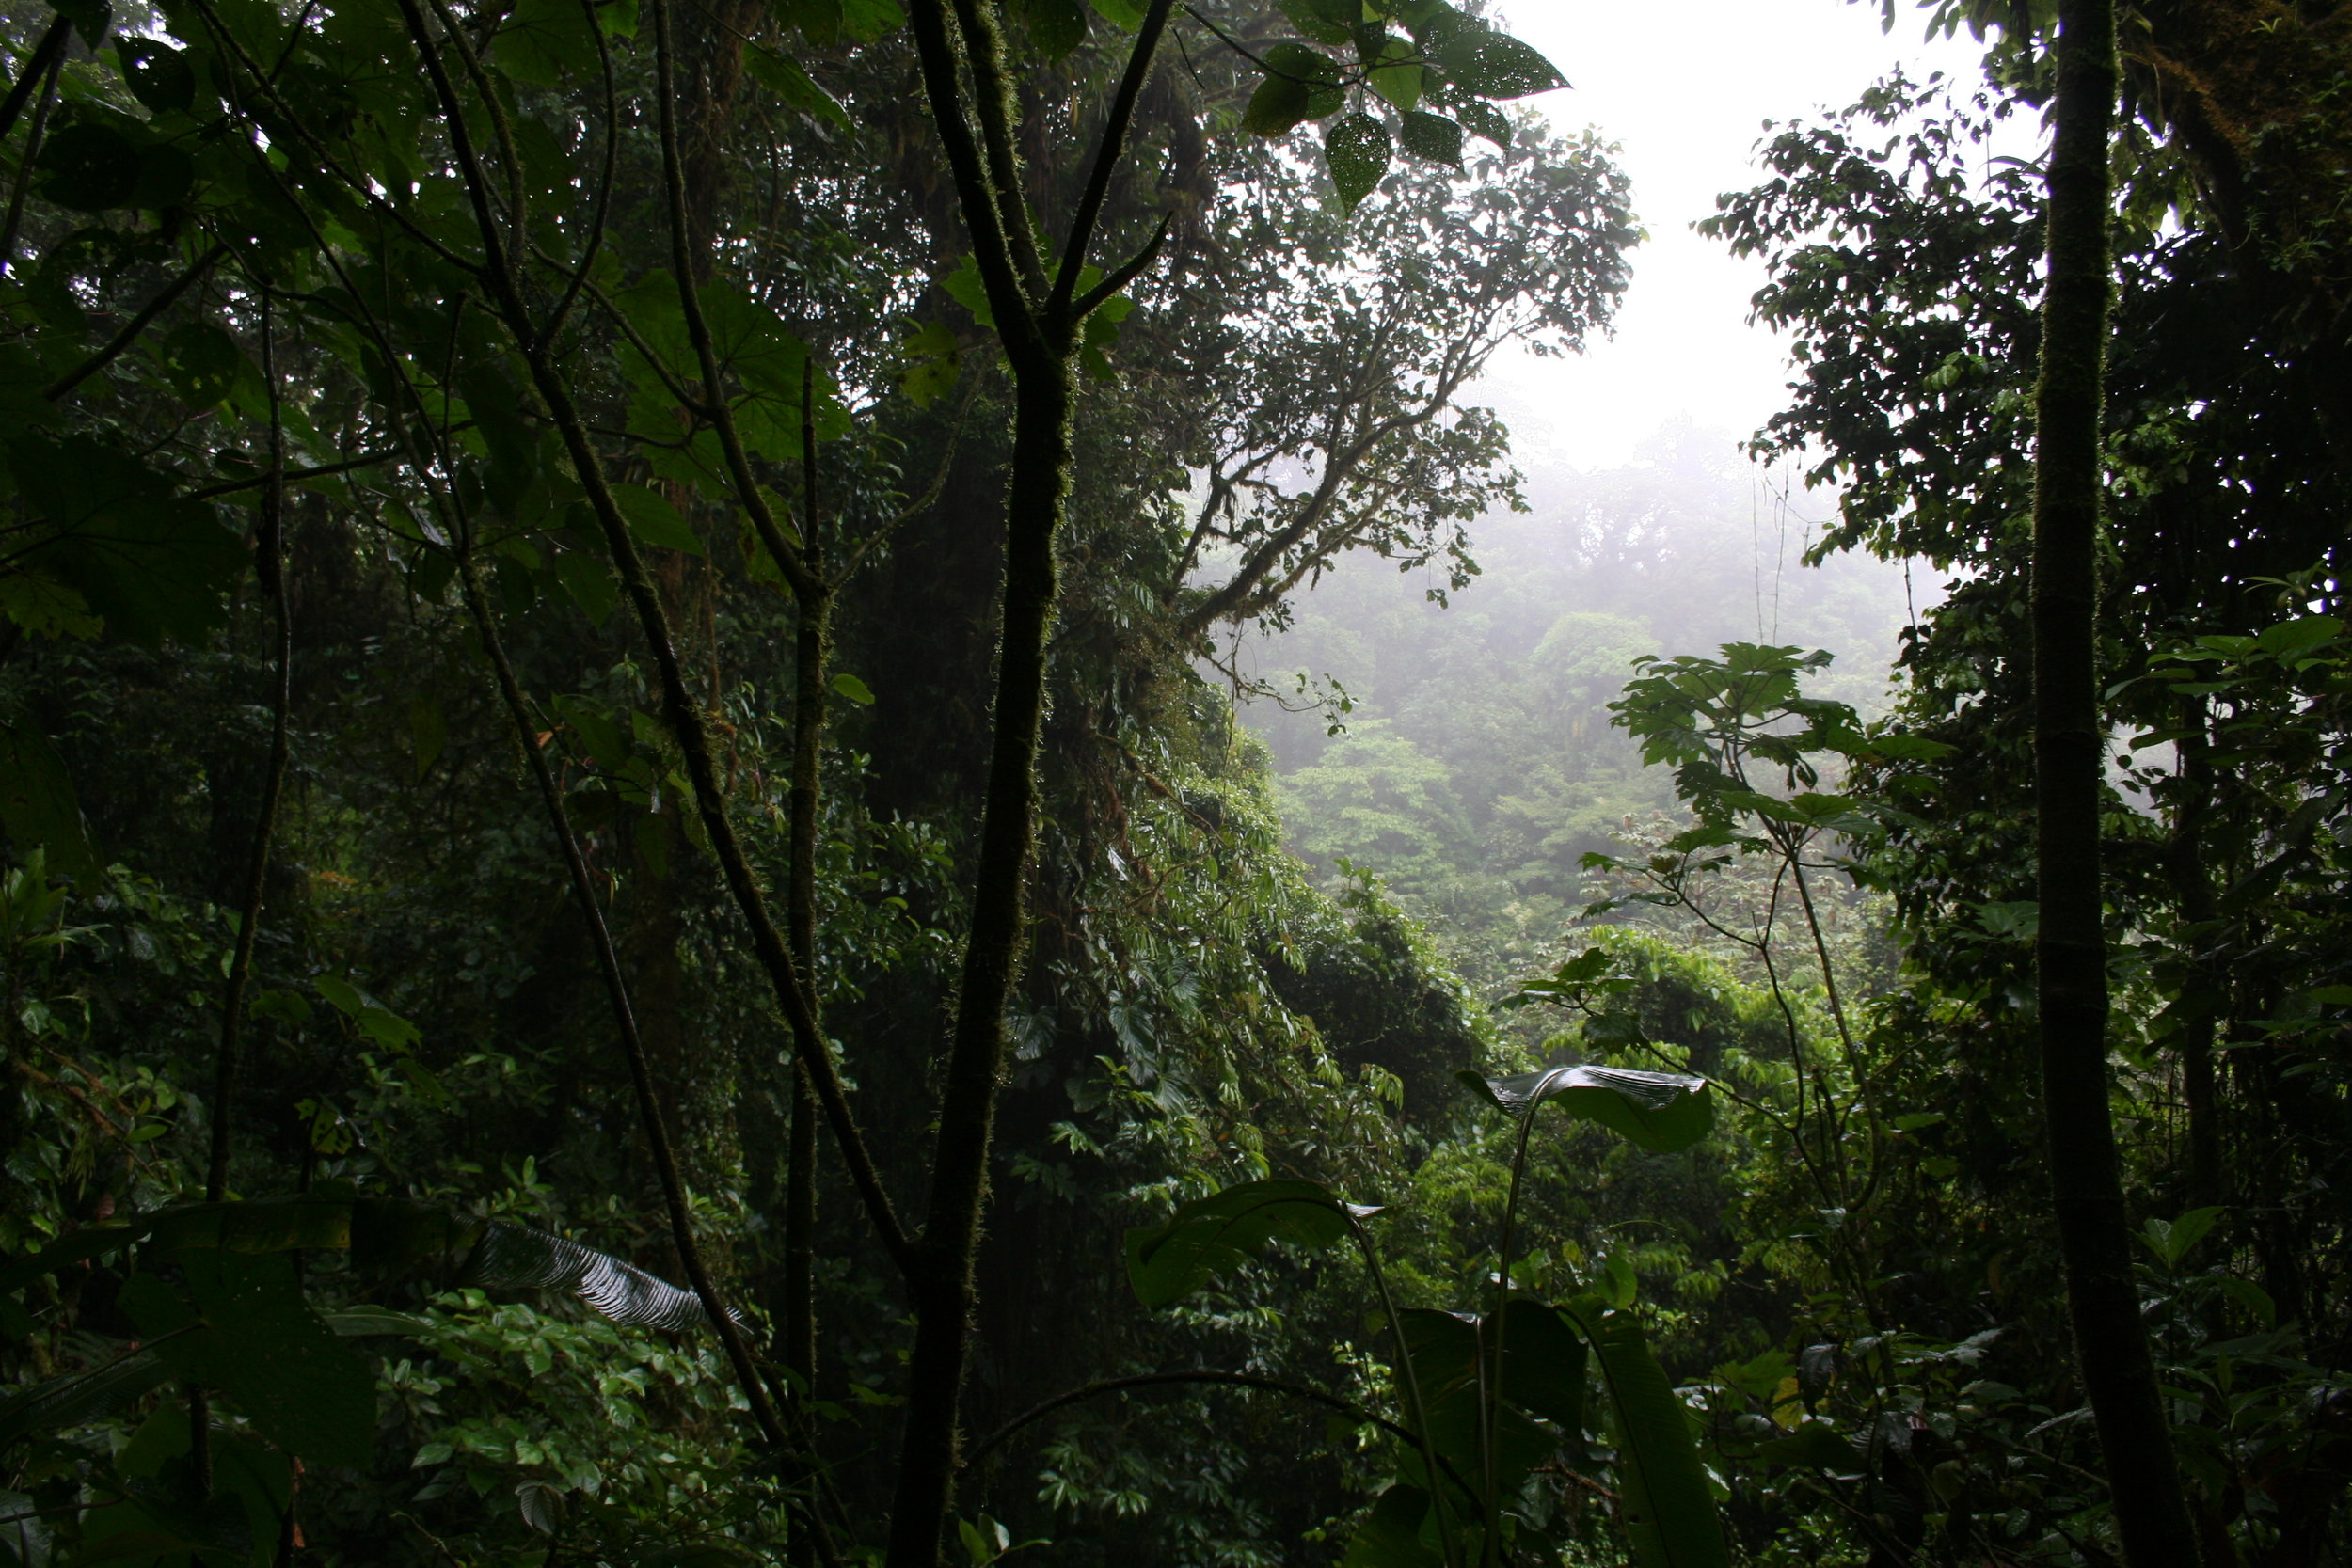 Guys, I know this may come as a surprise, but it is WET and misty in a cloud forest!